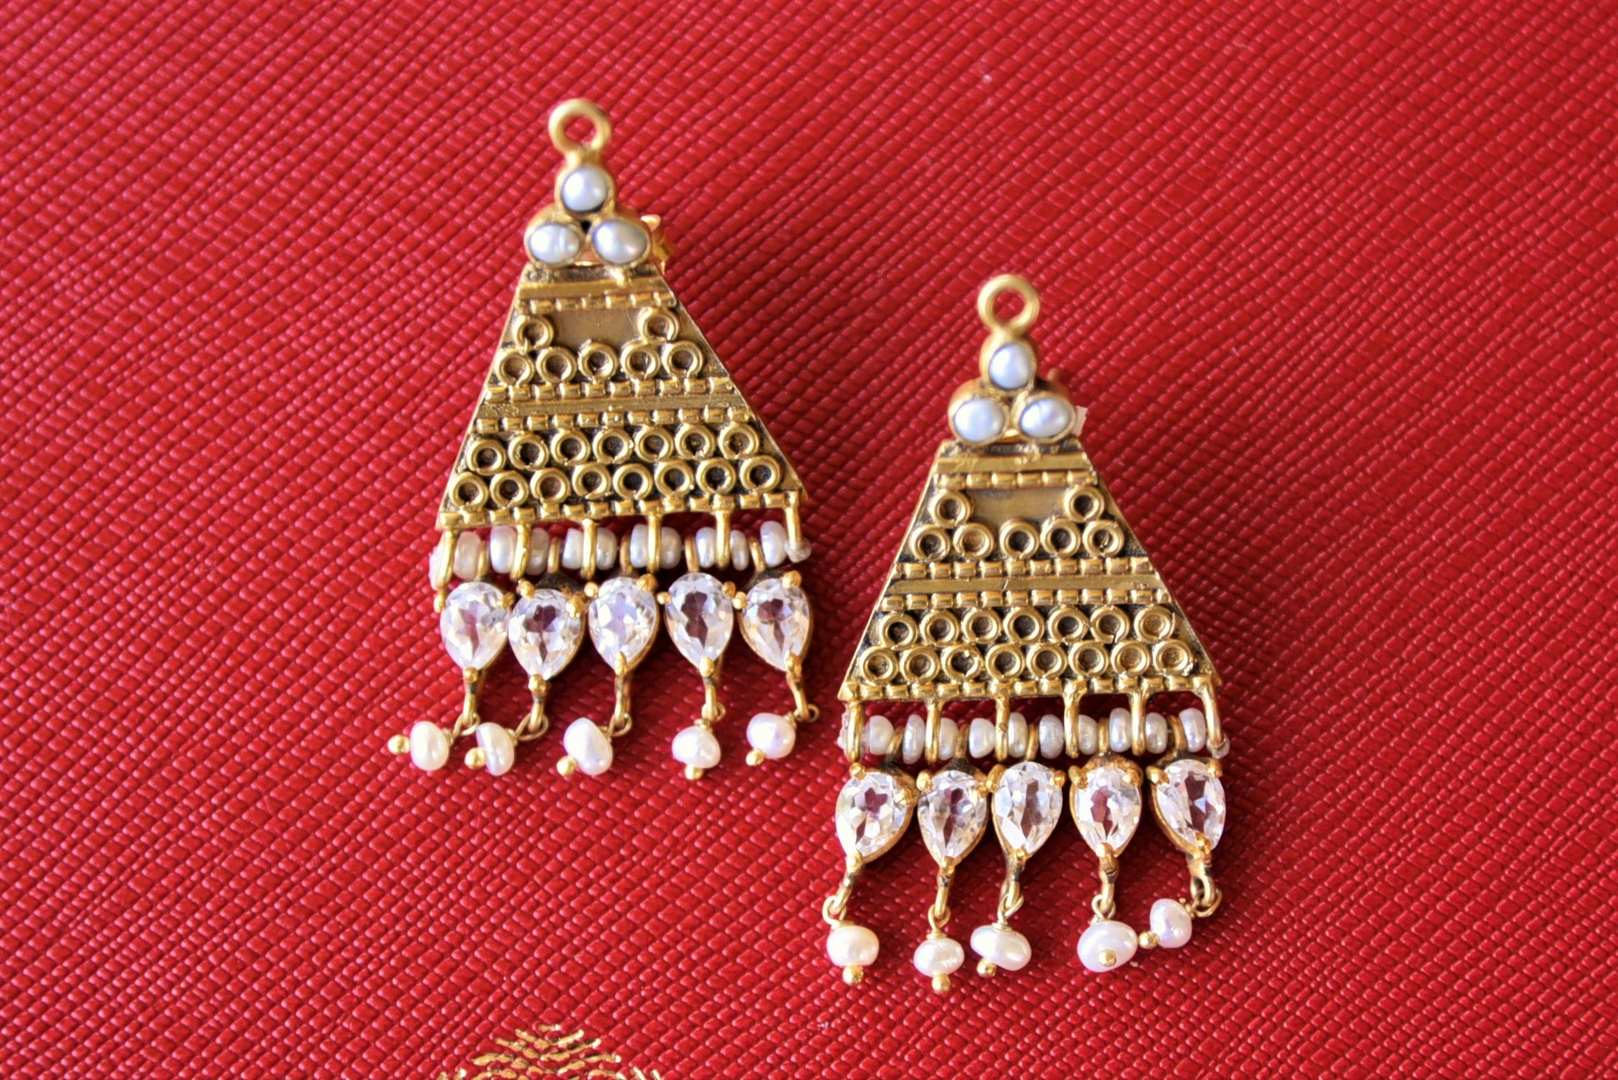 Buy Amrapali silver gold plated triangle earrings online in USA with white crystal drops. Elevate your ethnic attires with exquisite Indian jewelry, silver gold plated earrings, silver gold plated necklaces from Pure Elegance Indian fashion store in USA.-flatlay